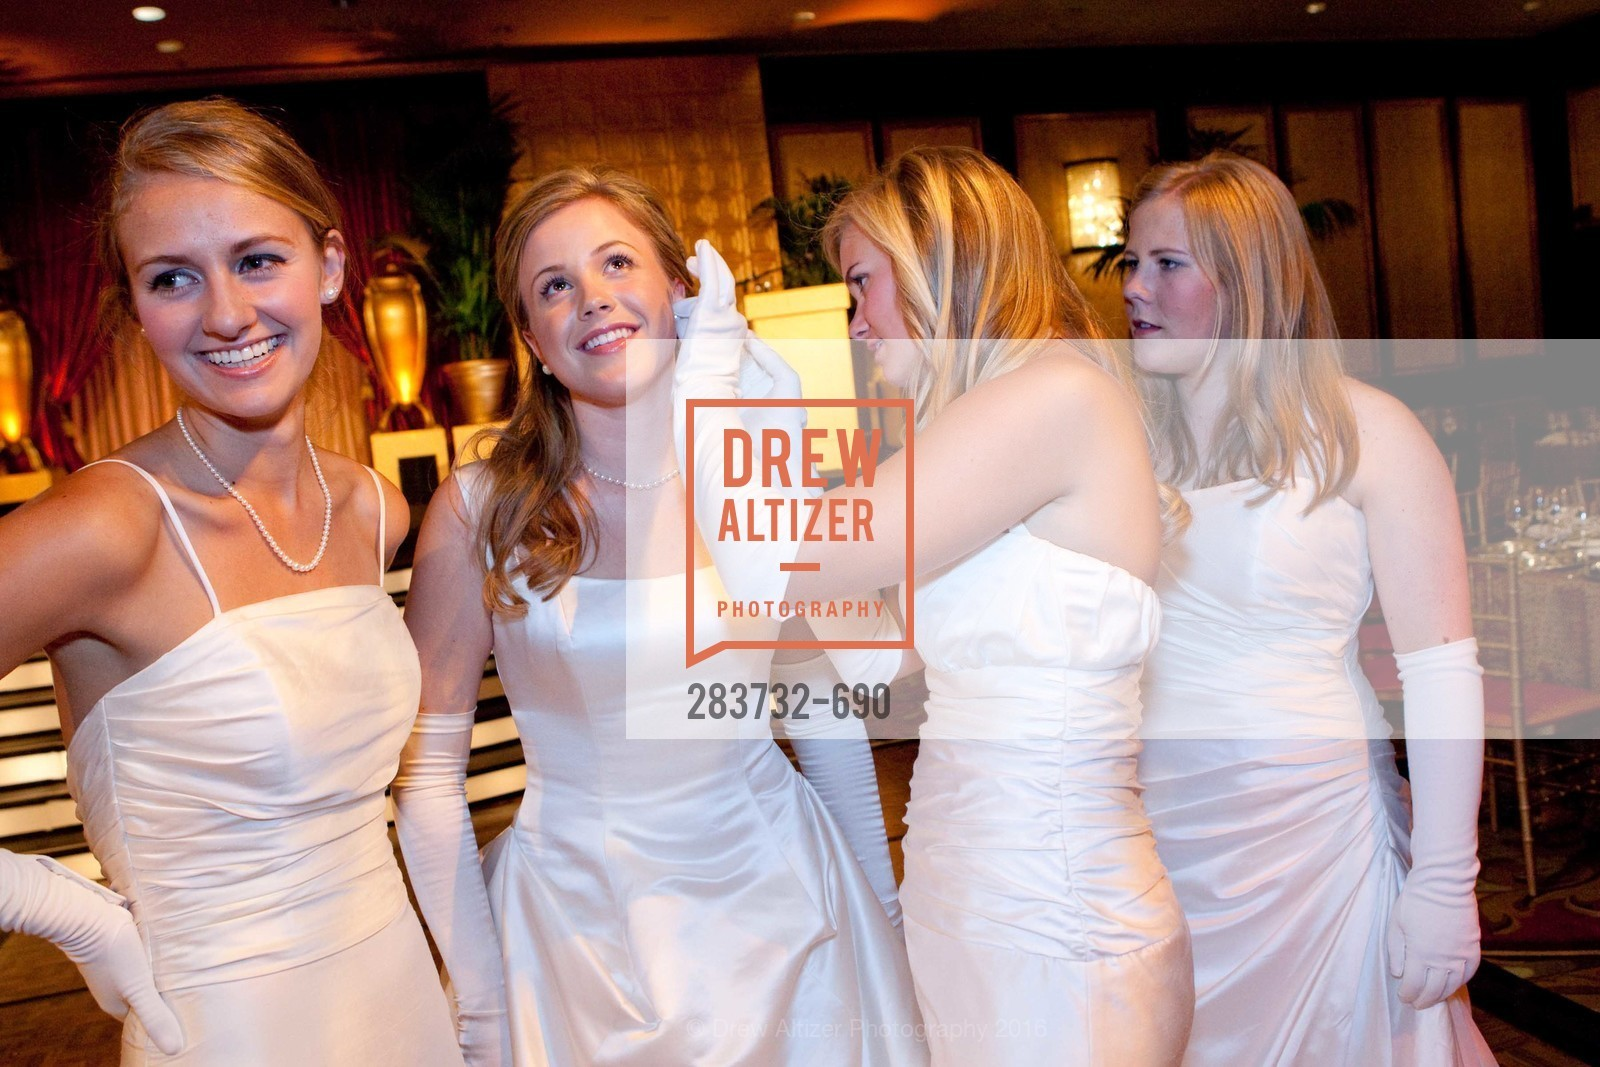 Abigail Brannan Mathieson, Alexandra Averell Lively Edmondson, Emma Giorgianna Jesberg, Kelly Erin Gillfillan, 2009 Debutante Ball, Unknown, July 4th, 2008,Drew Altizer, Drew Altizer Photography, full-service agency, private events, San Francisco photographer, photographer california